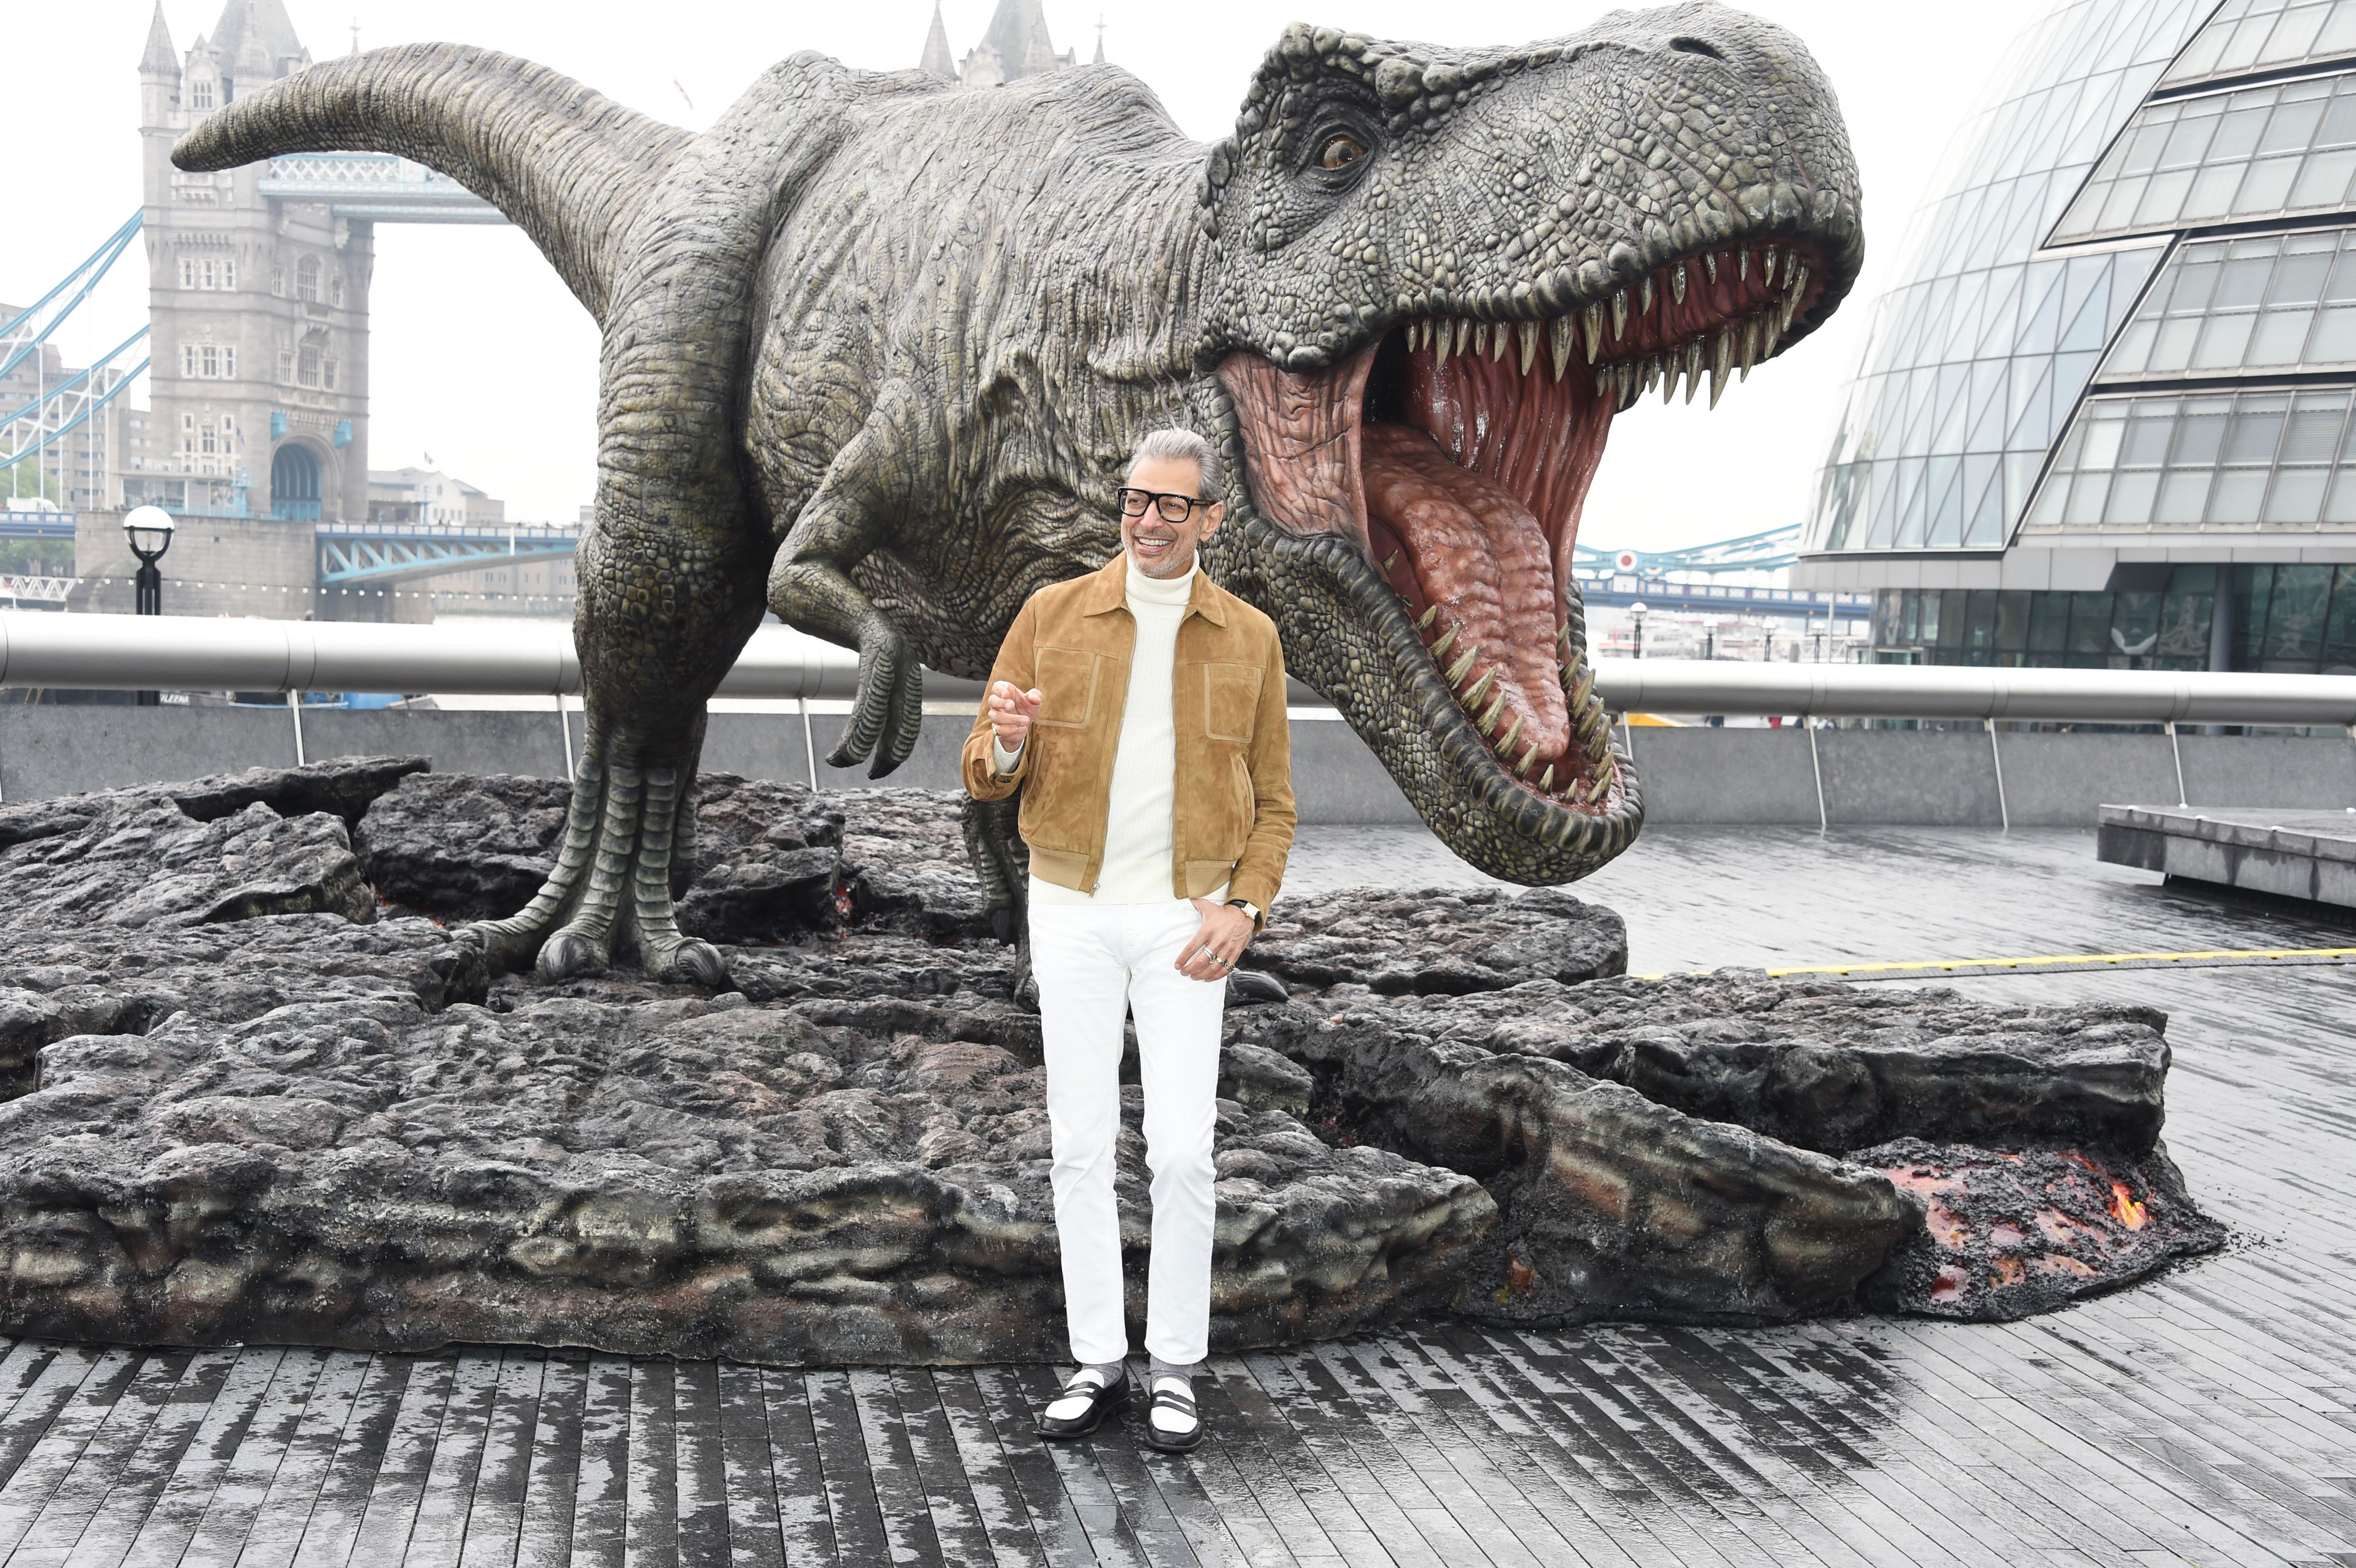 LONDON, ENGLAND - MAY 24:  Jeff Goldblum poses during the 'Jurassic World: Fallen Kingdom' photocall at London Bridge on May 24, 2018 in London, England.  (Photo by David M. Benett/Dave Benett/WireImage)